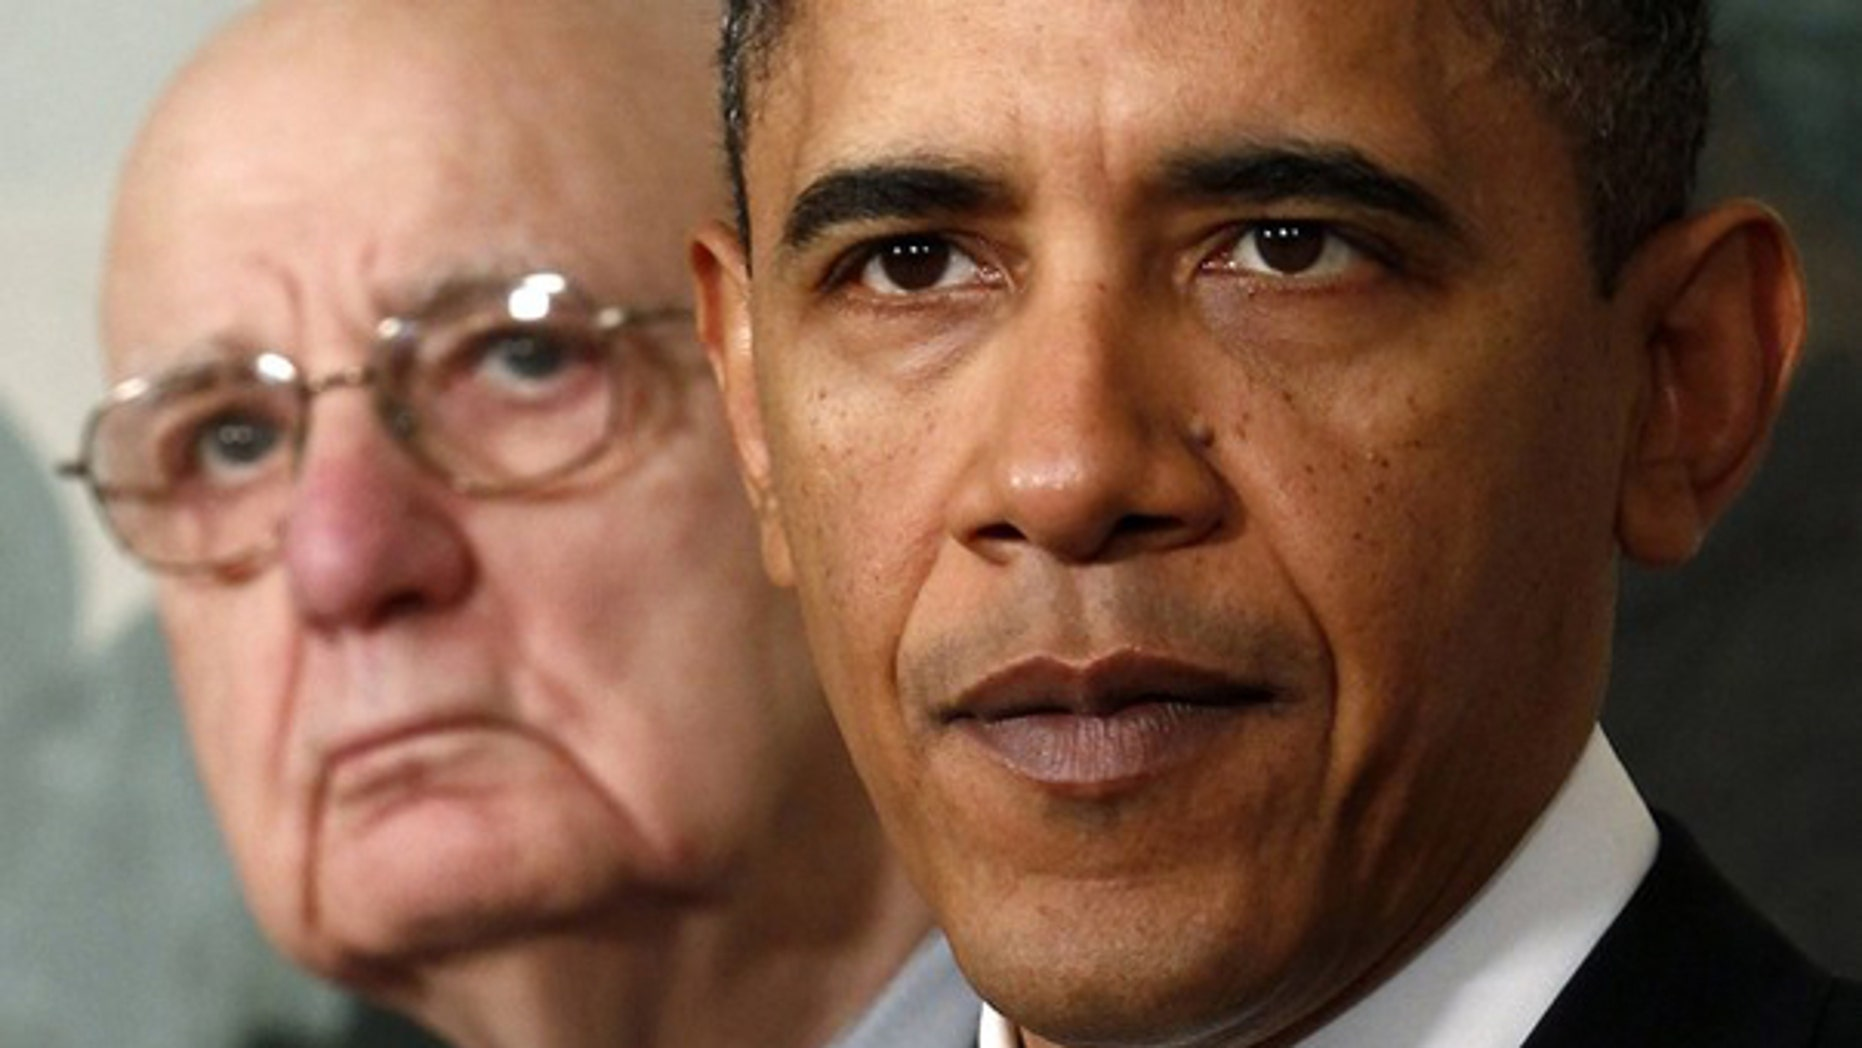 In this January 21, 2010 file photo, President Obama speaks about financial reform after his meeting with Presidential Economic Recovery Advisory Board Chair Paul Volcker at the White House. (Reuters)